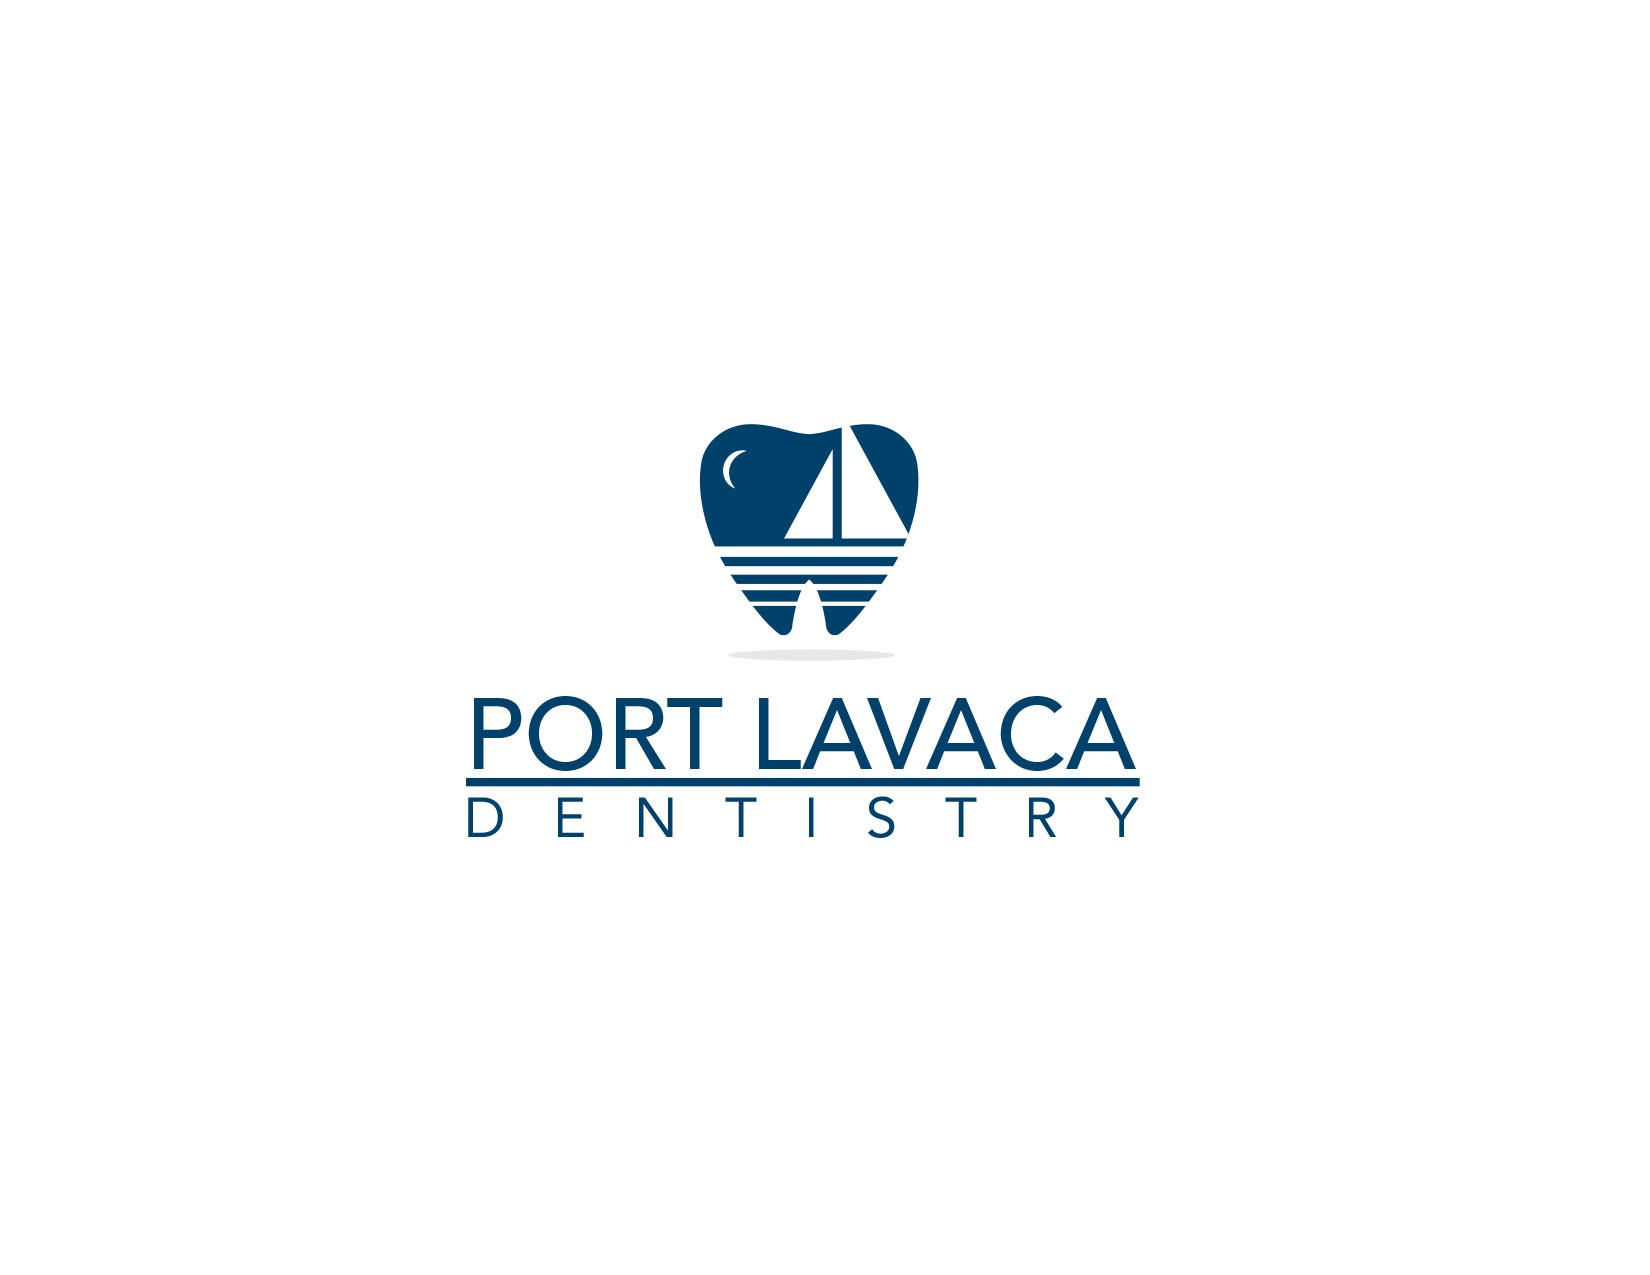 Create the next logo and business card for Port Lavaca Dentistry